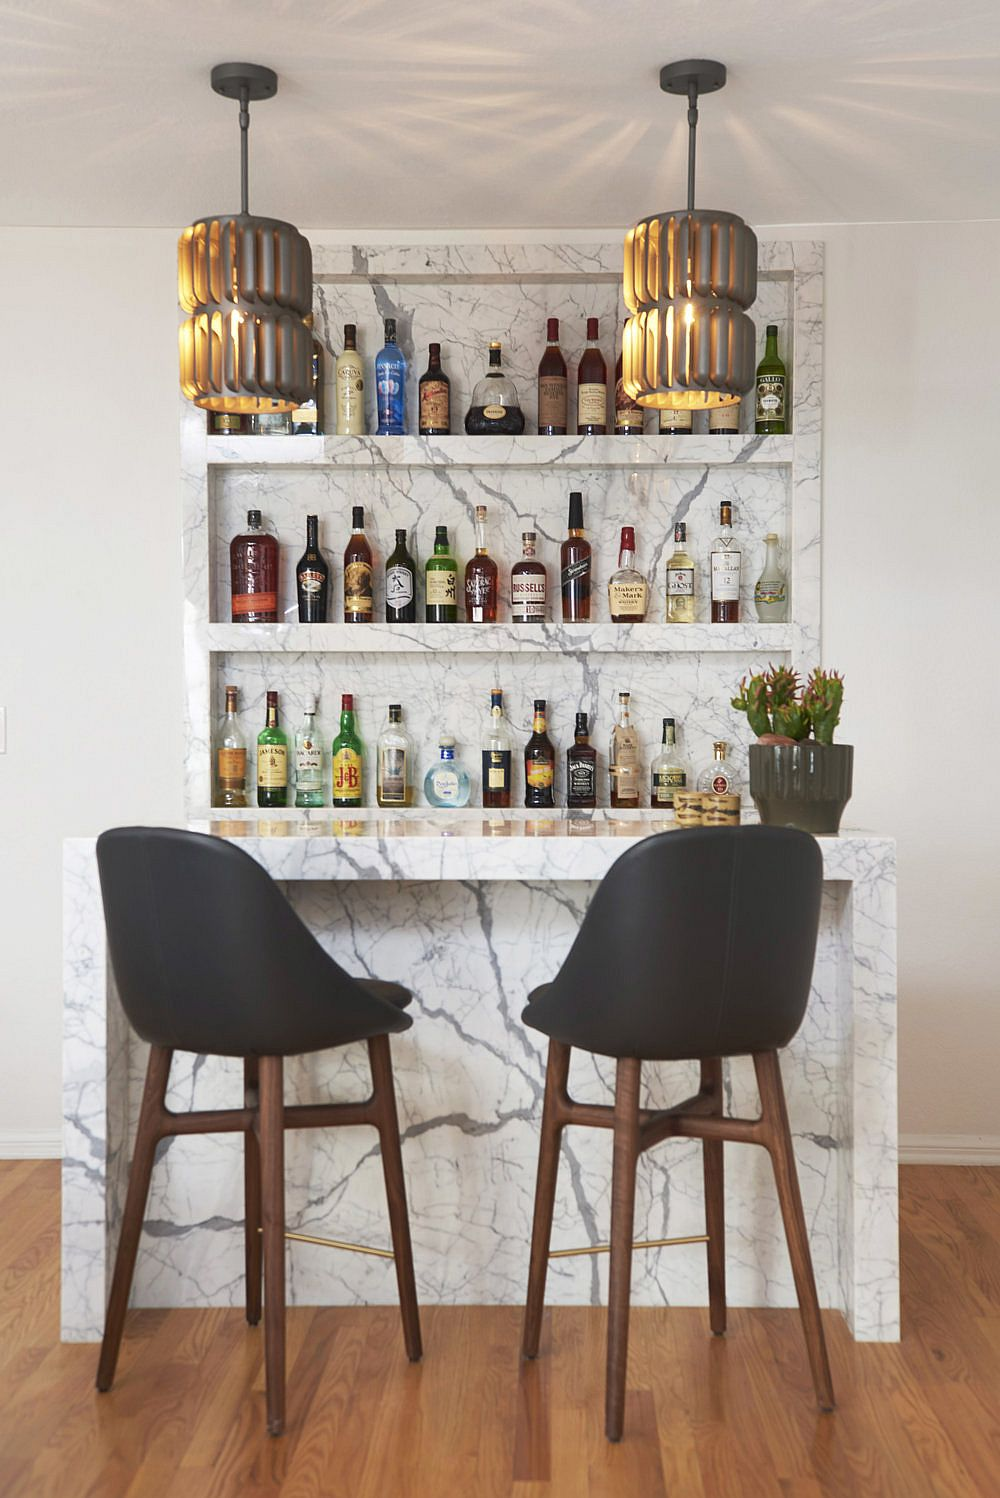 Home-bar-with-marble-backsplash-and-counter-along-with-a-couple-of-bar-stools